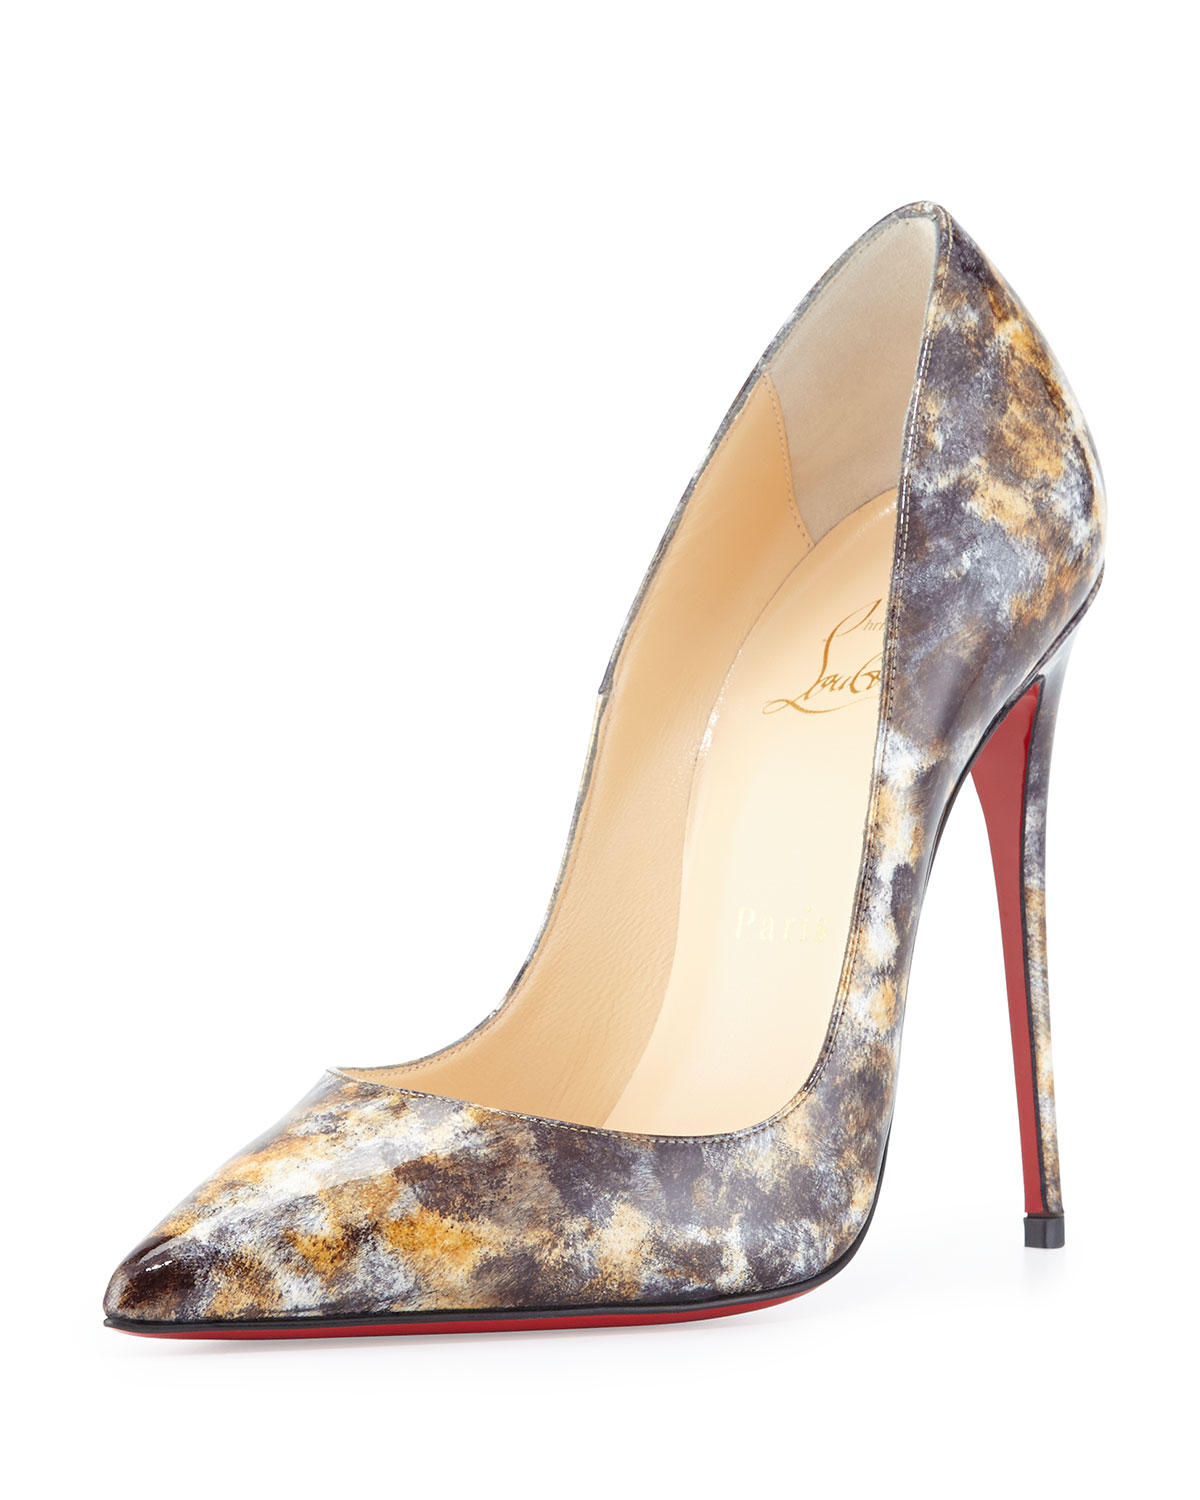 men christian louboutin sneakers - Christian louboutin So Kate Mouchette Red Sole Pump in Multicolor ...